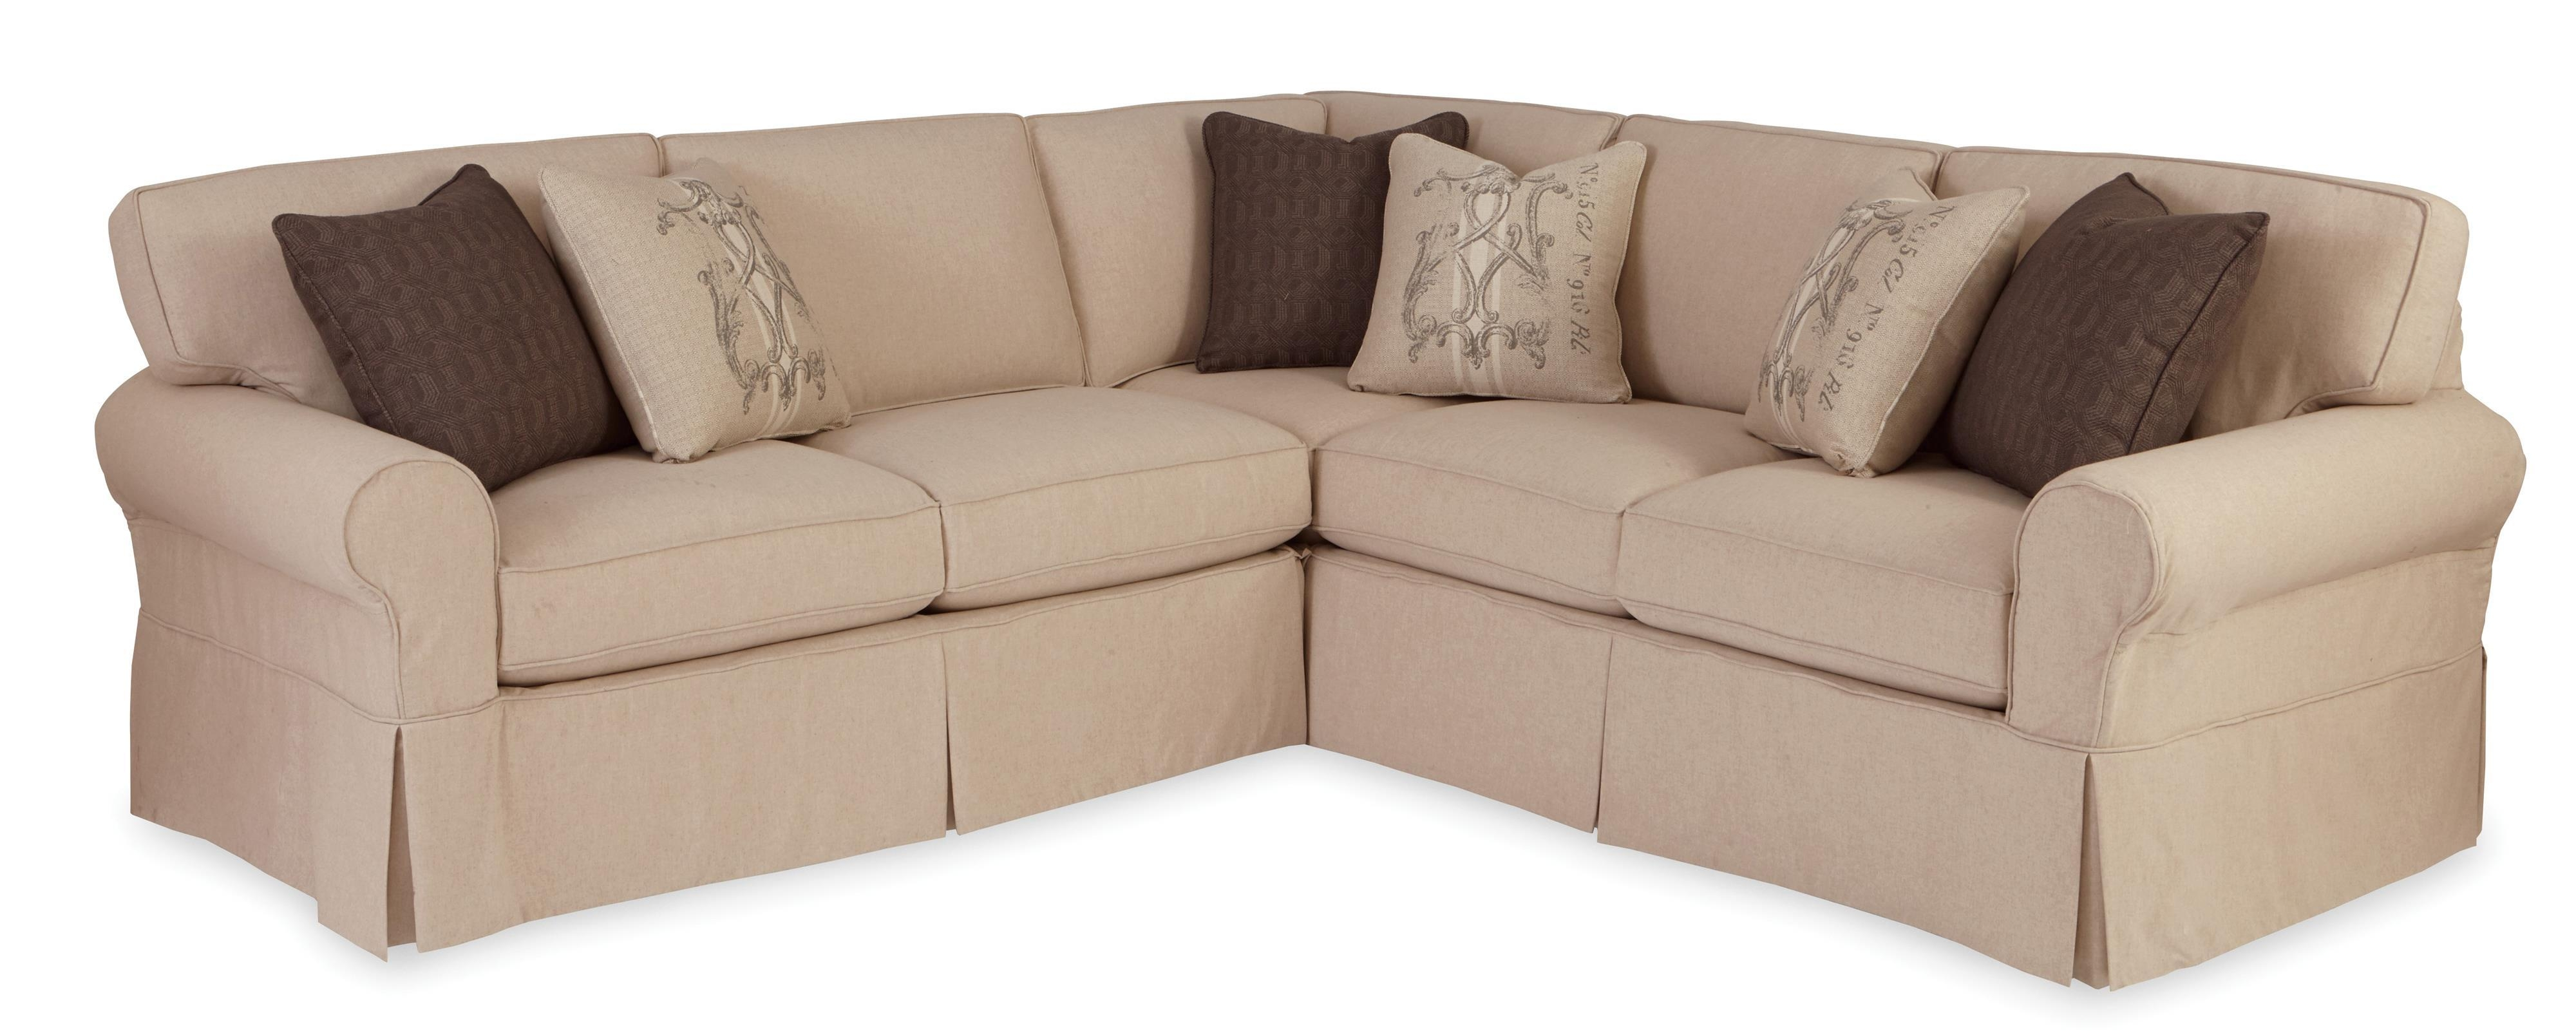 Furniture: Loveseat Slipcovers   Slipcovers For Couch And Loveseat Pertaining To Sofa Loveseat Slipcovers (Image 11 of 25)